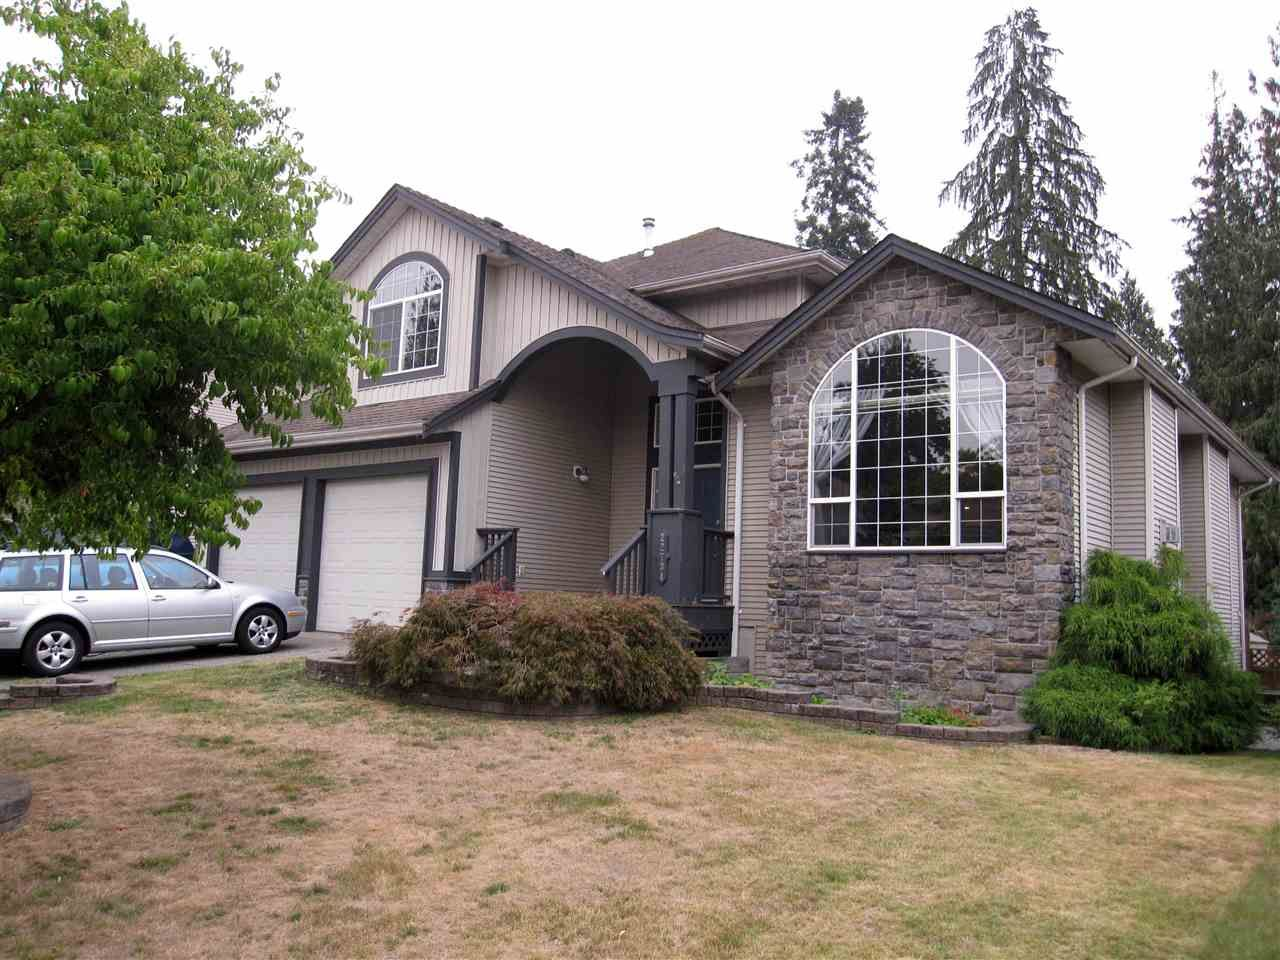 Photo 1: Photos: 22734 HOLYROOD Avenue in Maple Ridge: East Central House for sale : MLS®# R2203564